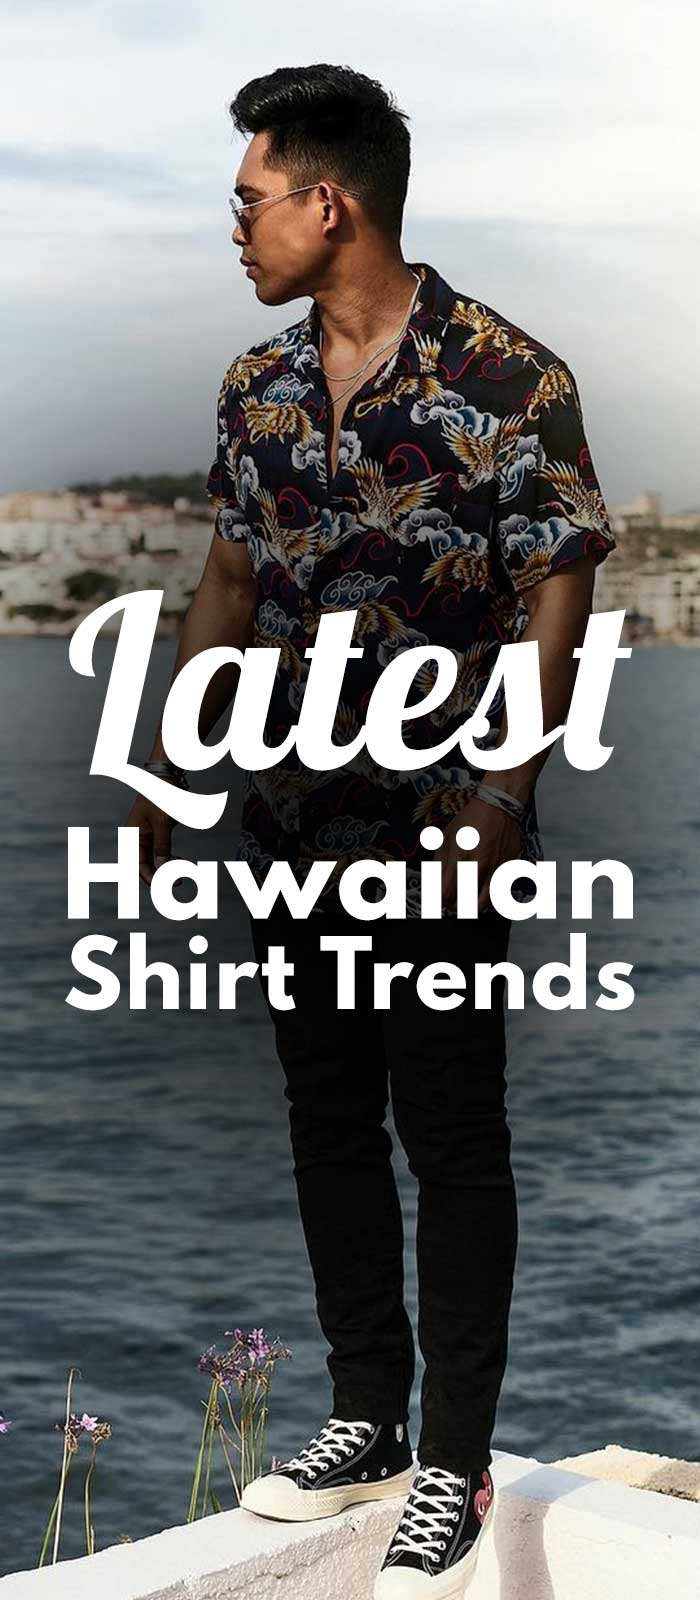 Latest Hawaiian Shirt Trends.